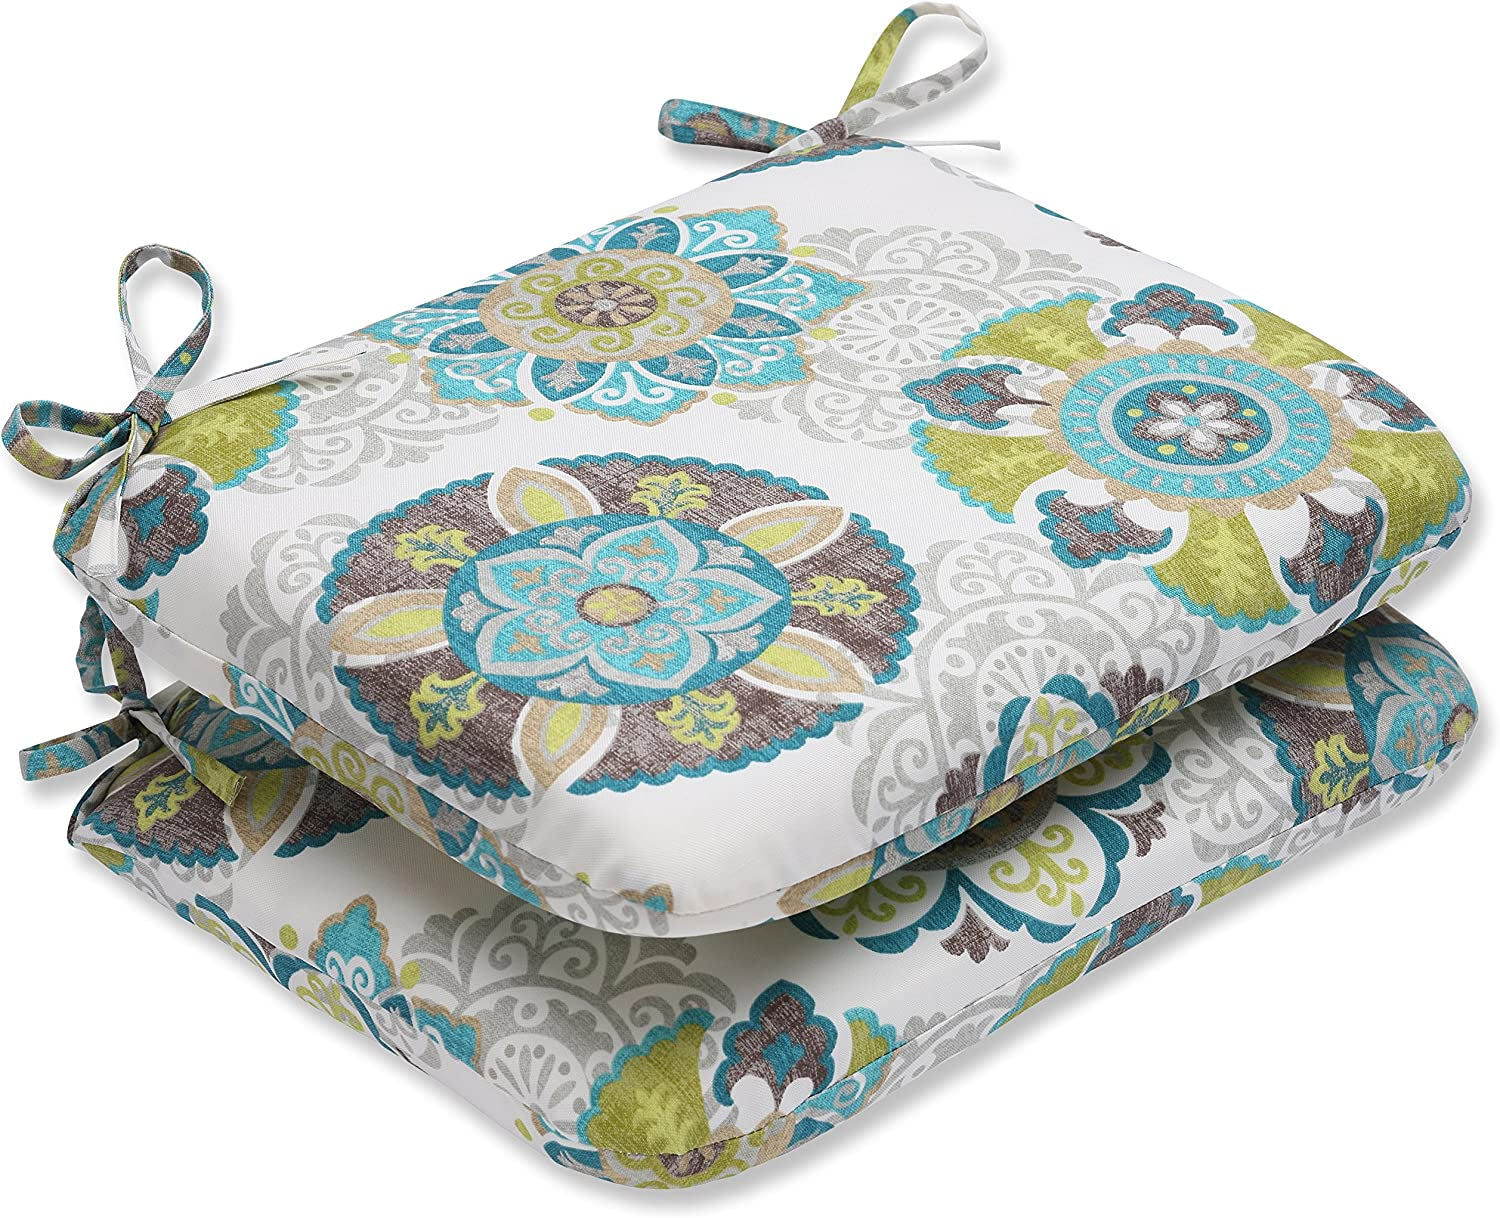 """Pillow Perfect Outdoor/Indoor Allodala Oasis Round Corner Seat Cushions, 18.5"""" x 15.5"""", Blue, 2 Pack"""